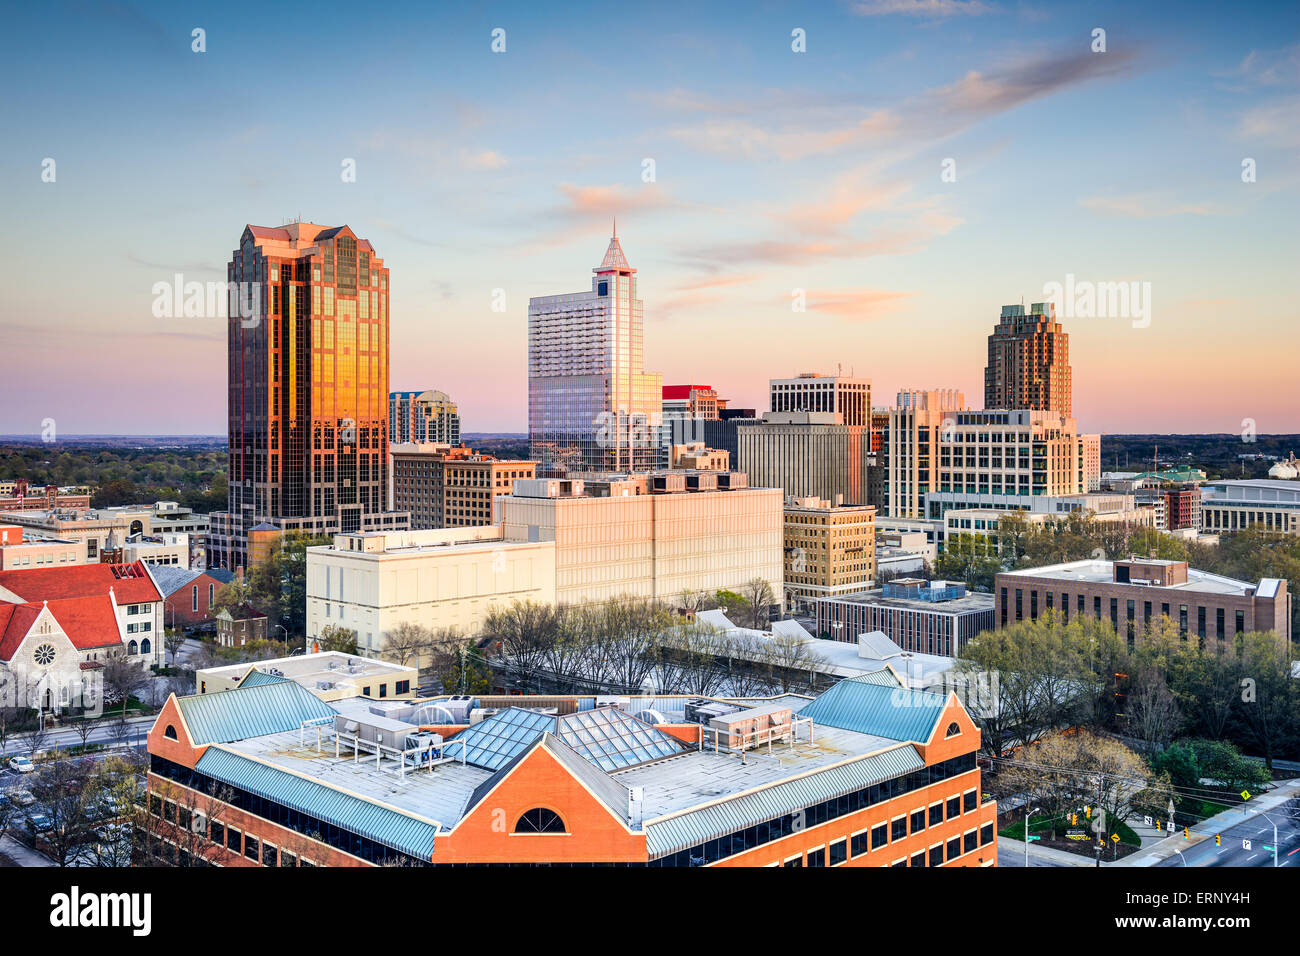 Die Innenstadt von Skyline von Raleigh, North Carolina, USA. Stockbild